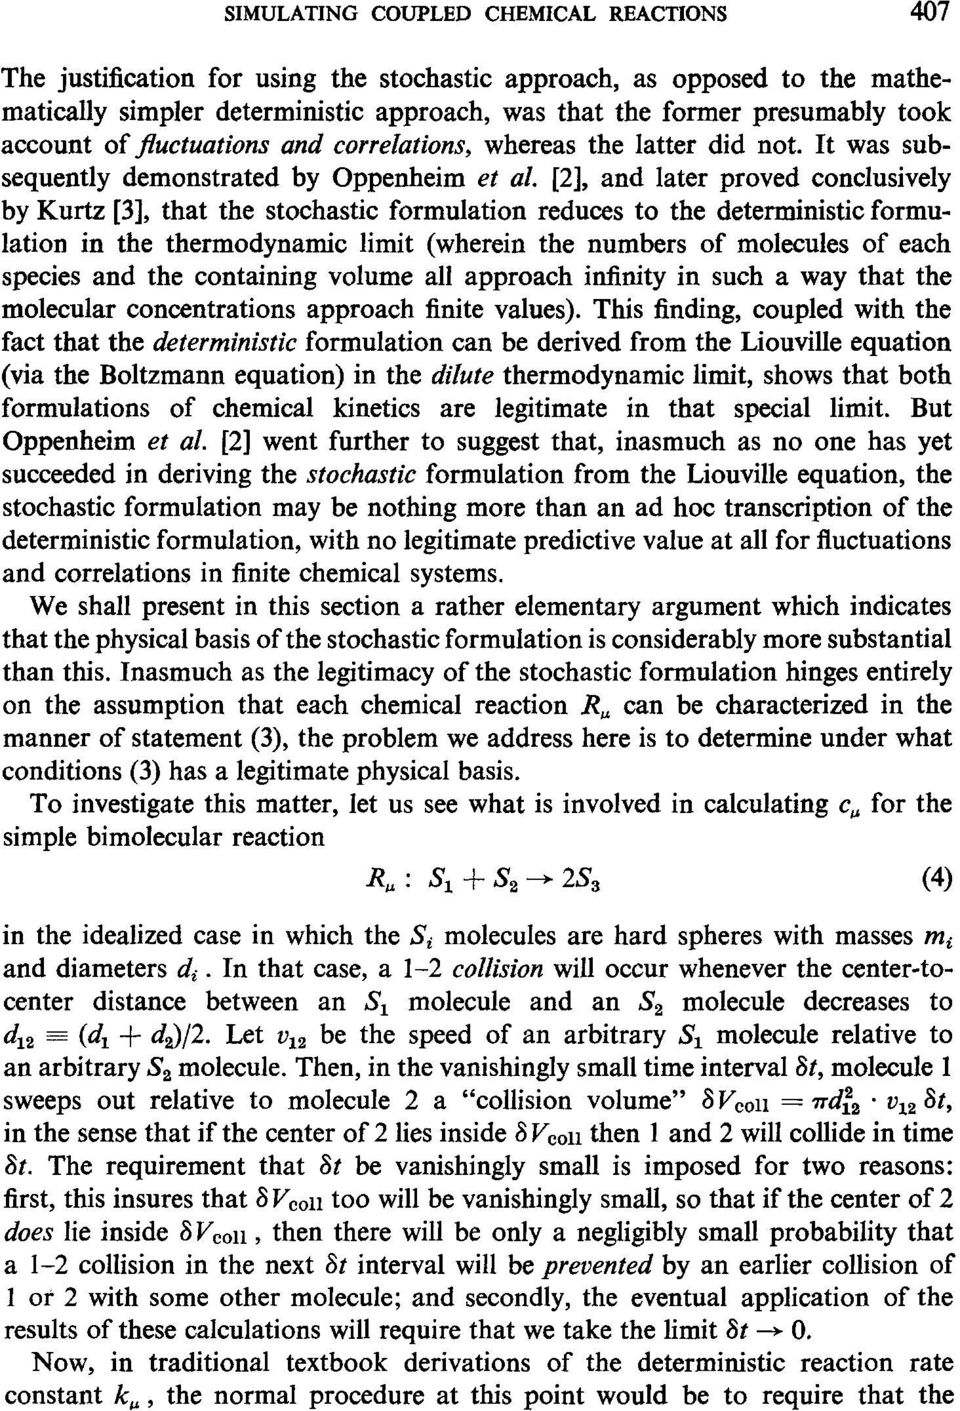 [2], and later proved conclusively by Kurtz [3], that the stochastic formulation reduces to the deterministic formulation in the thermodynamic limit (wherein the numbers of molecules of each species